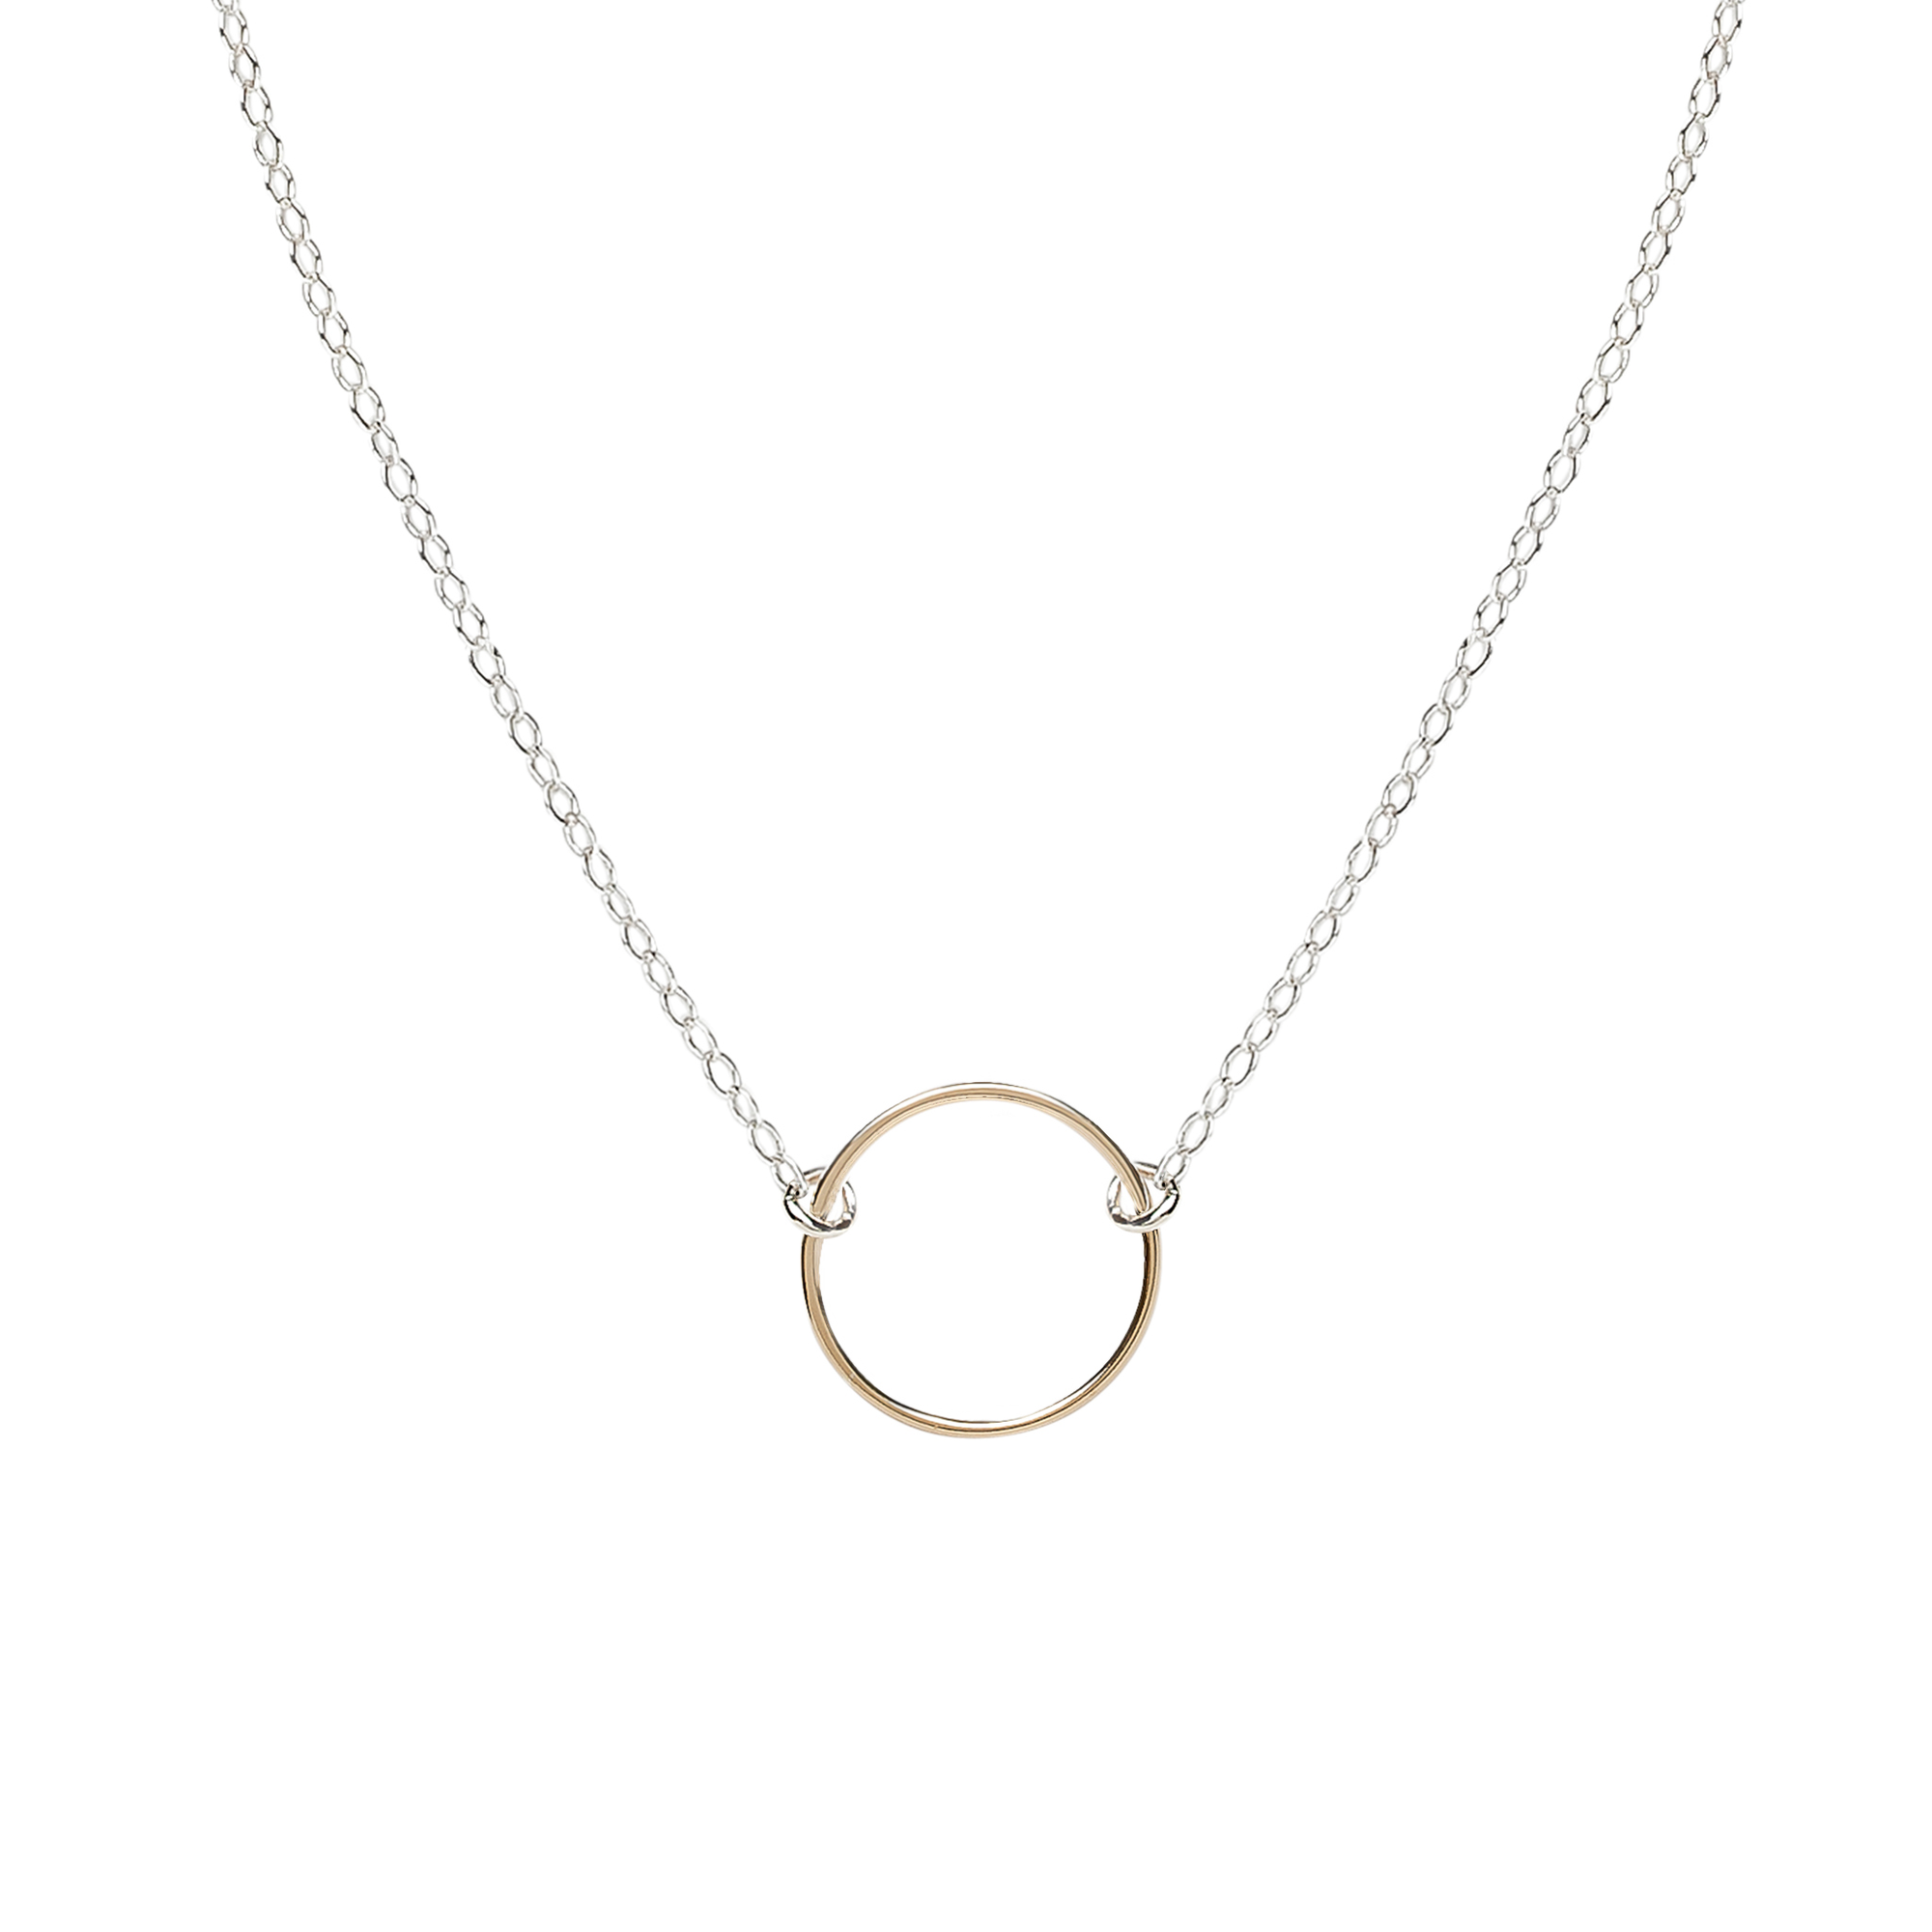 Cynthia Mini Gold Circle Necklace